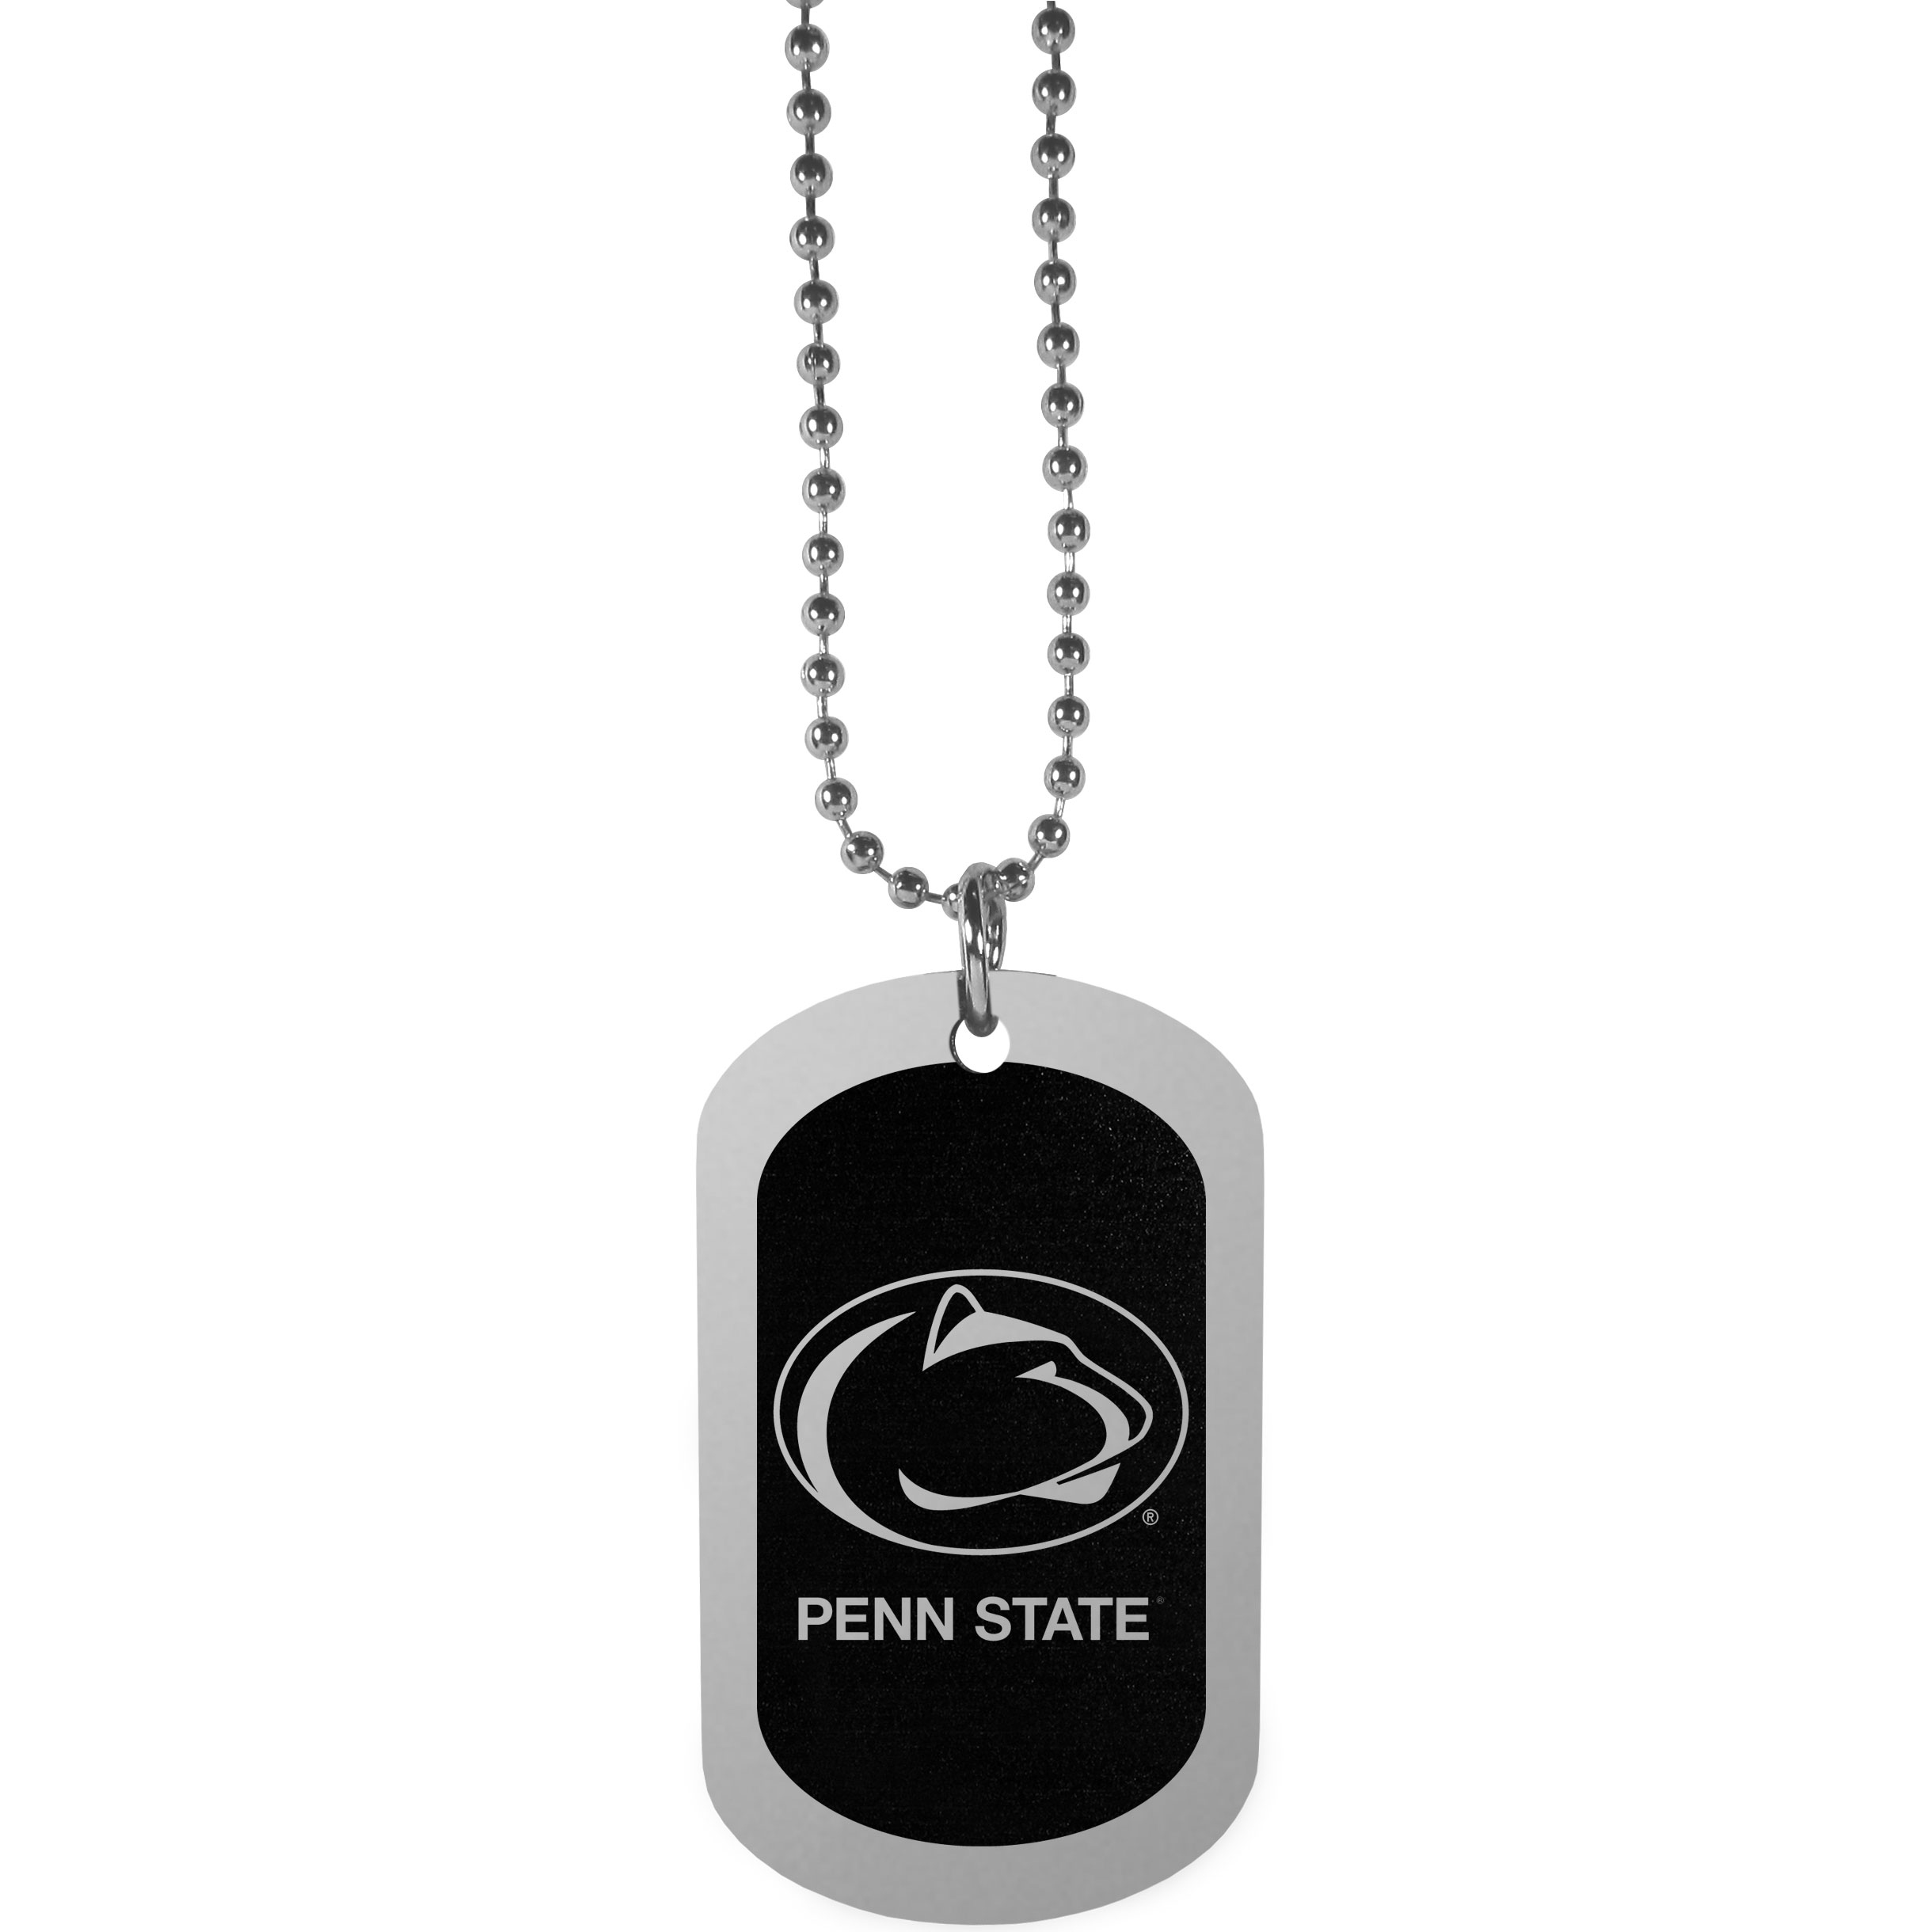 Penn St. Nittany Lions Chrome Tag Necklace - Dog tag necklaces are a fashion statement that is here to stay. The sporty version of the classic tag features a black printed over a high polish tag to create a bold and sporty look. The tag comes on a 26 inch ball chain with a ball and joint clasp. Any Penn St. Nittany Lions would be proud to wear this attractive fashion accessory.